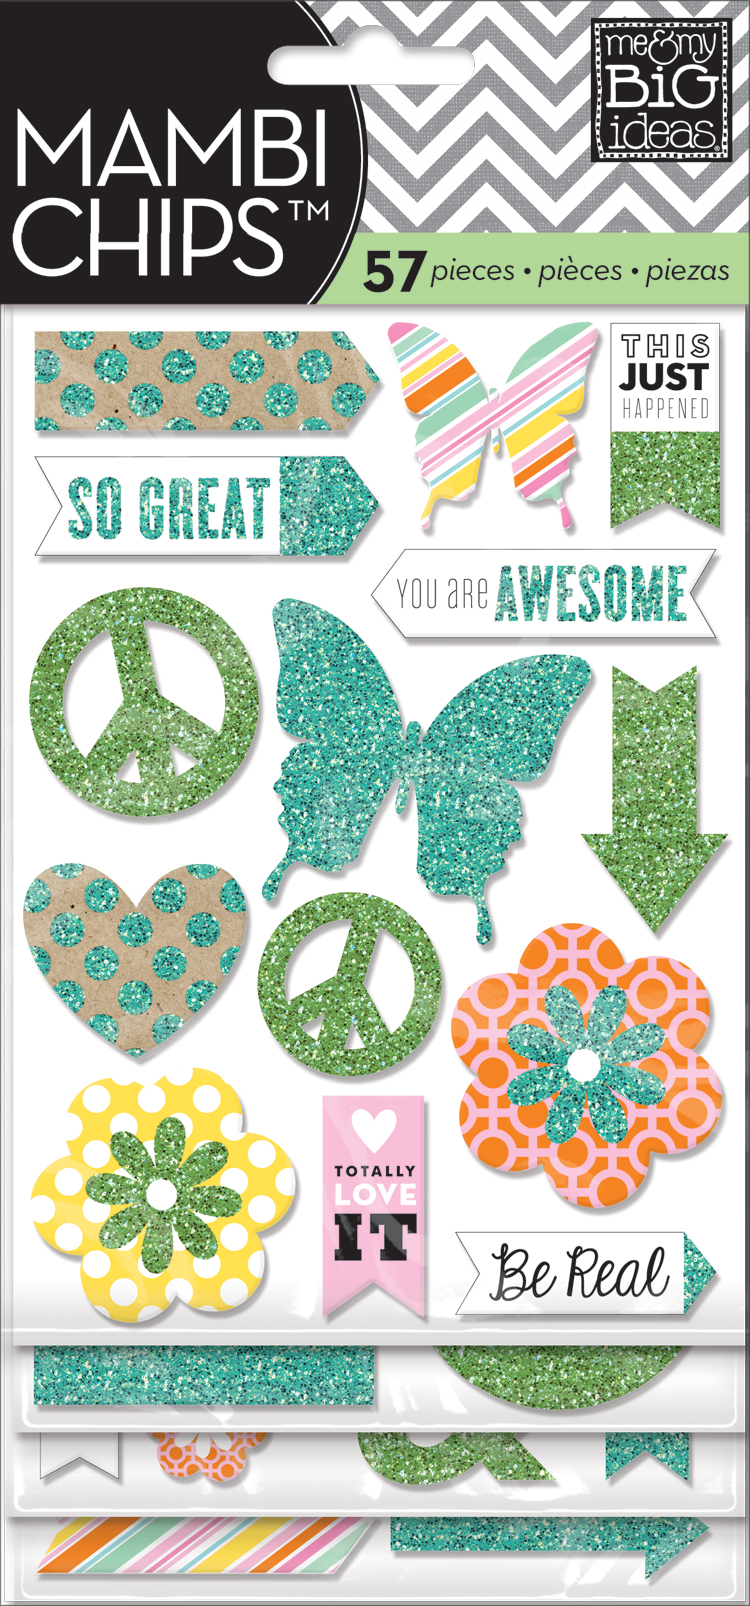 CBVX-14 Teal & Green Glitter embellished chipboard used on a great DIY folder.